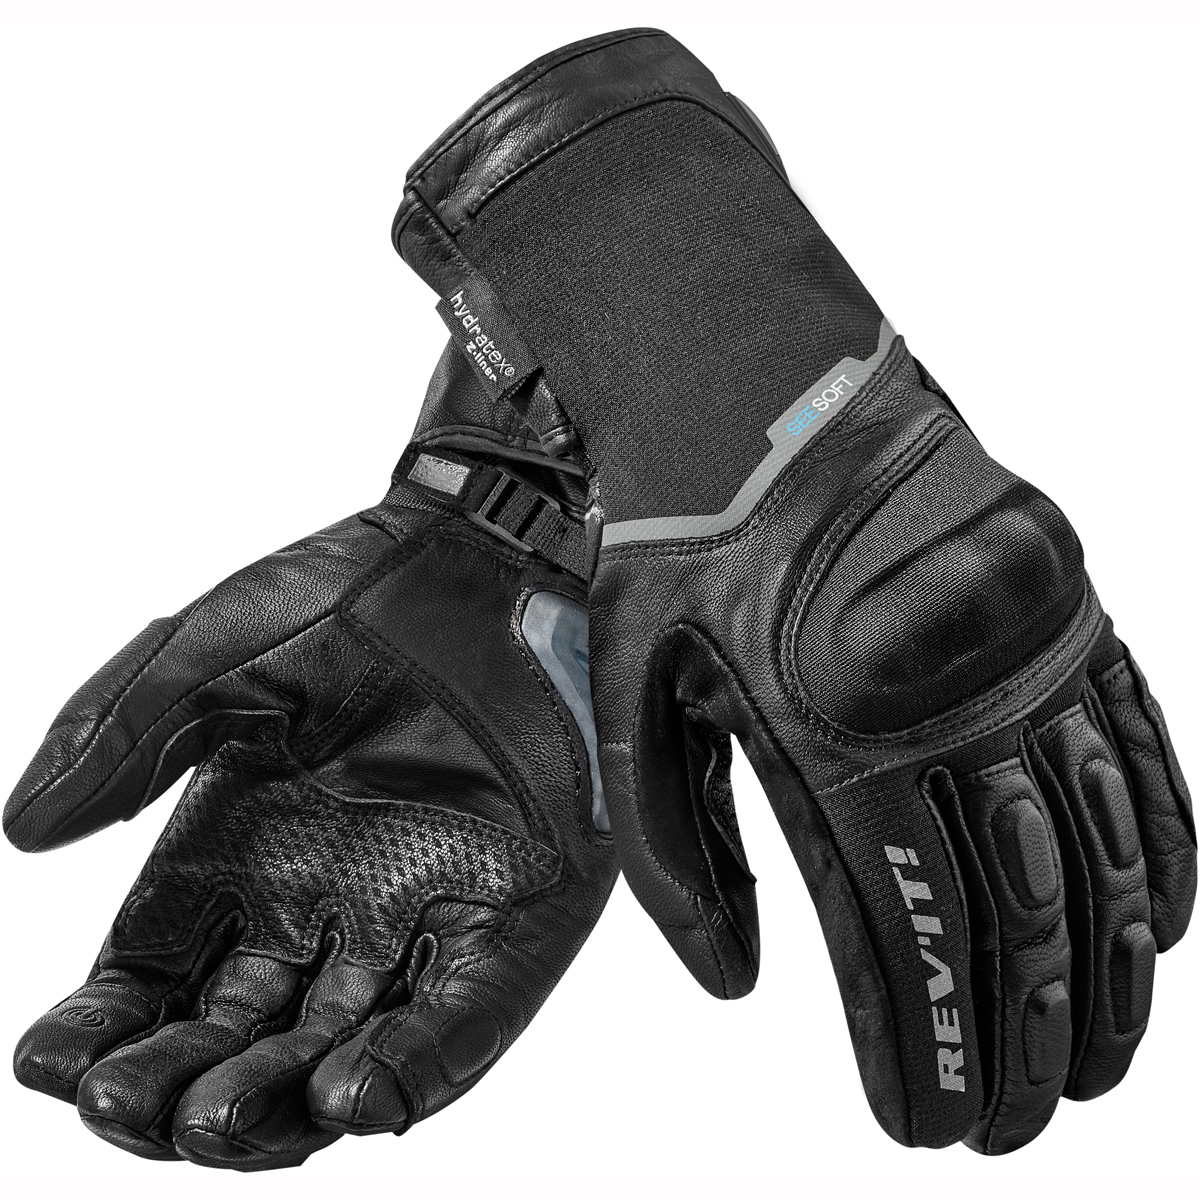 Motorcycle gloves palm protection - 9